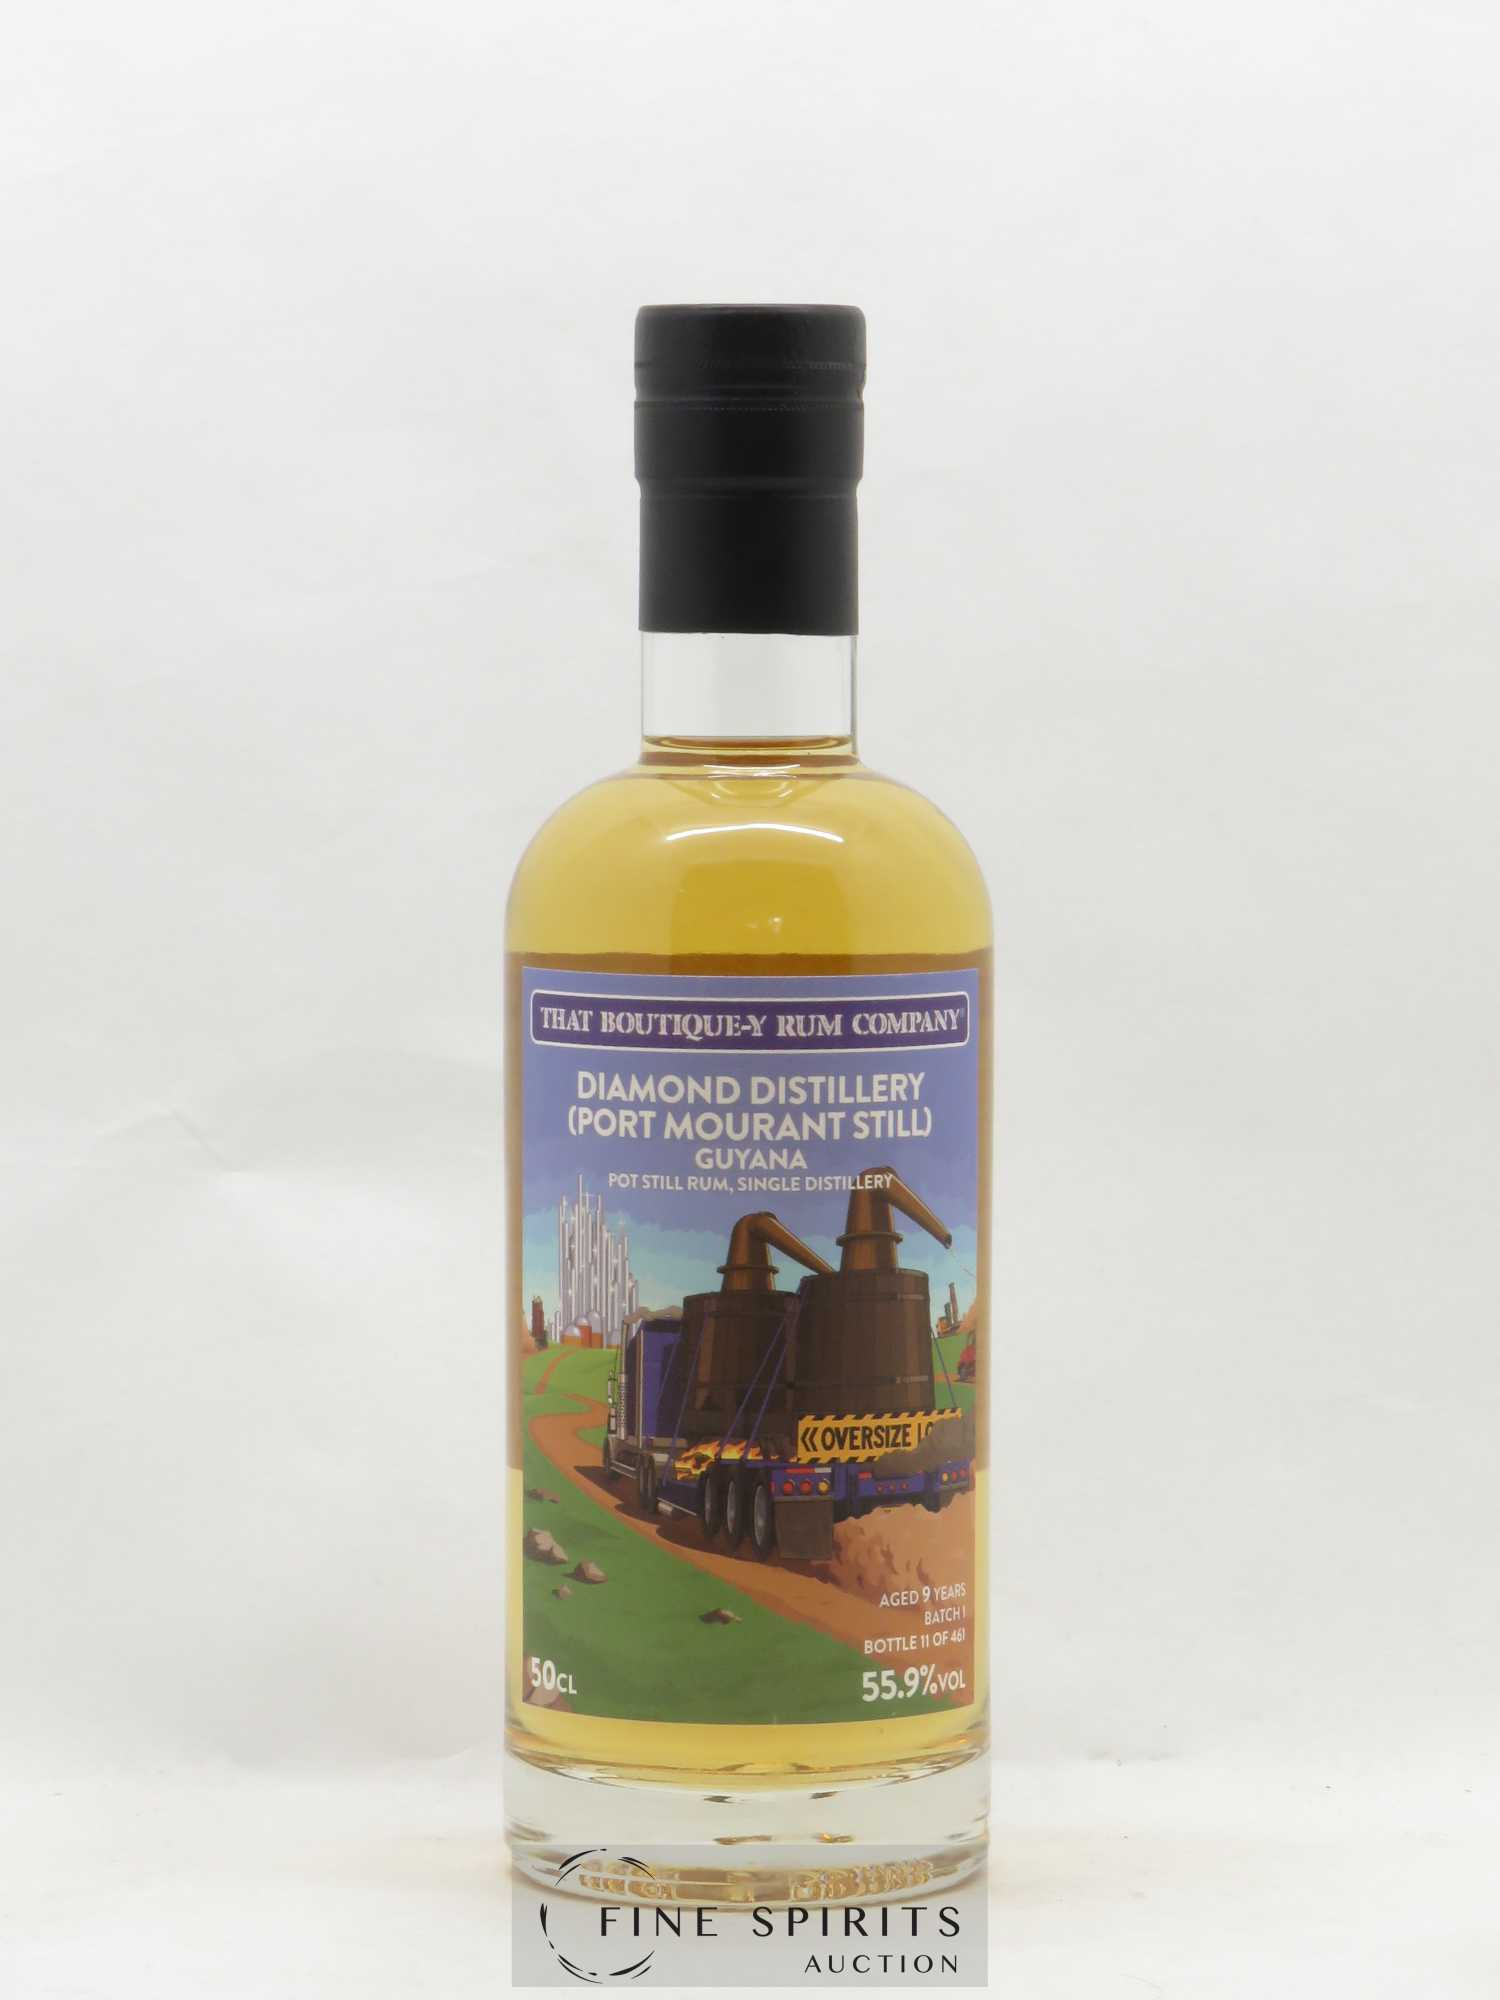 Rhum Diamond Distillery 9 years That Boutique-Y Rum Company Port Mourant Still N°11 50CL  - Lot de 1 Bouteille